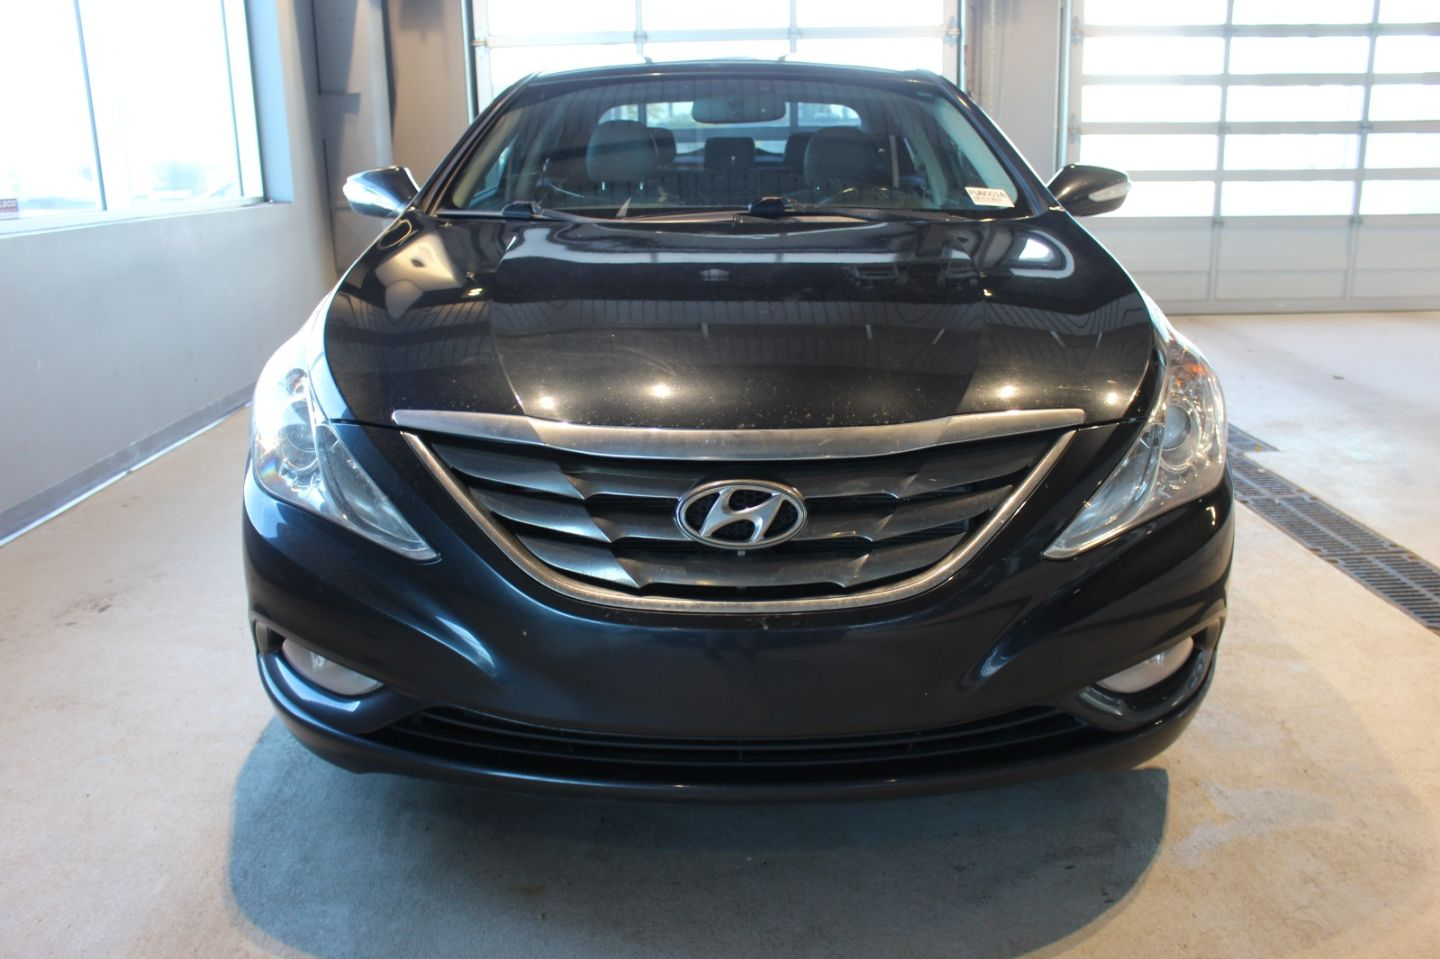 2011 Hyundai Sonata Limited w/Nav for sale in Spruce Grove, Alberta